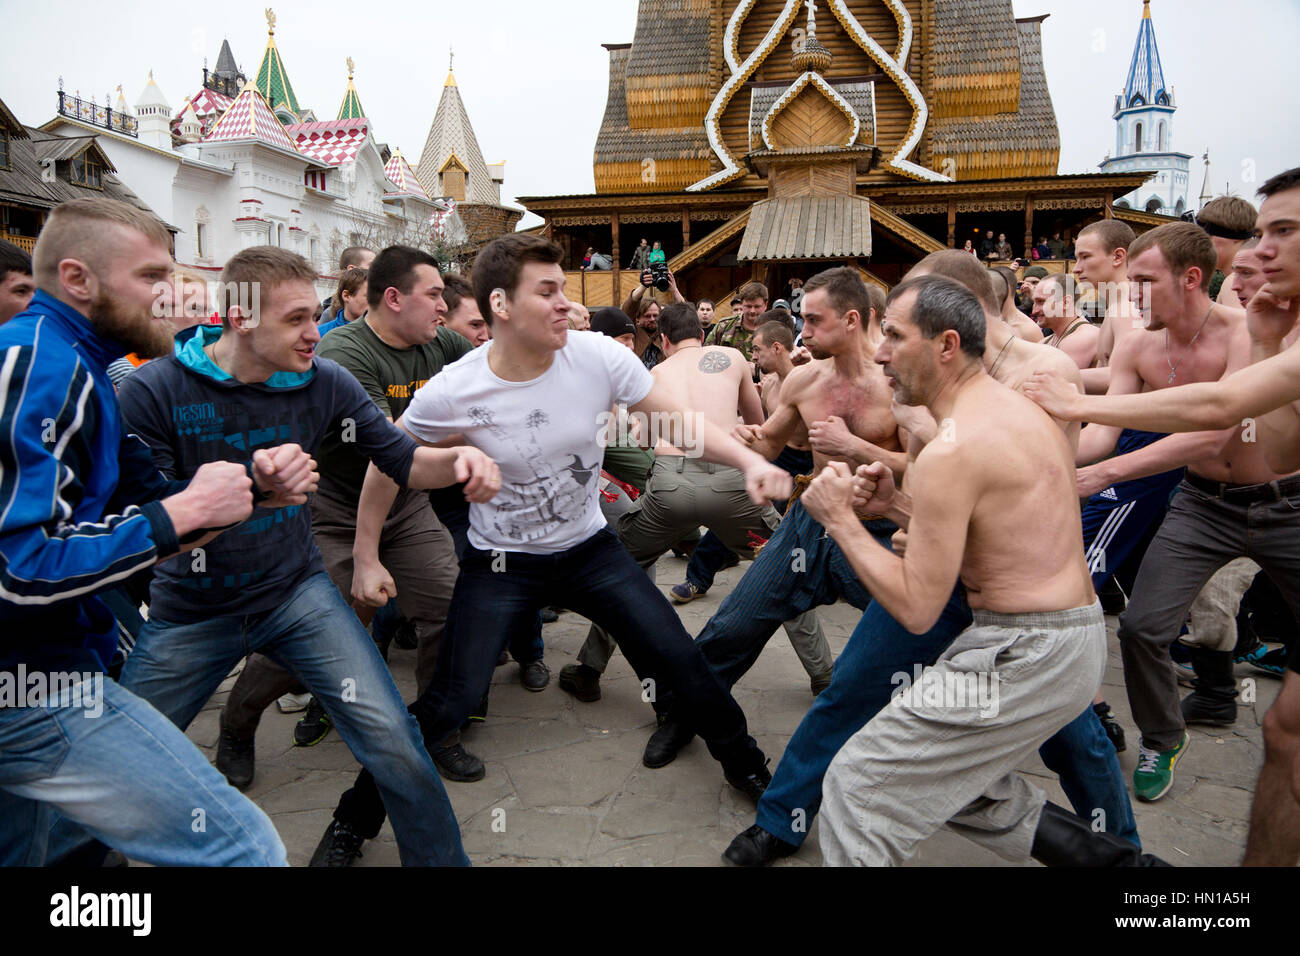 Guests engage in traditional line fighting at the Maslenitsa Festival on the territory of the Izmailovo Kremlin - Stock Image